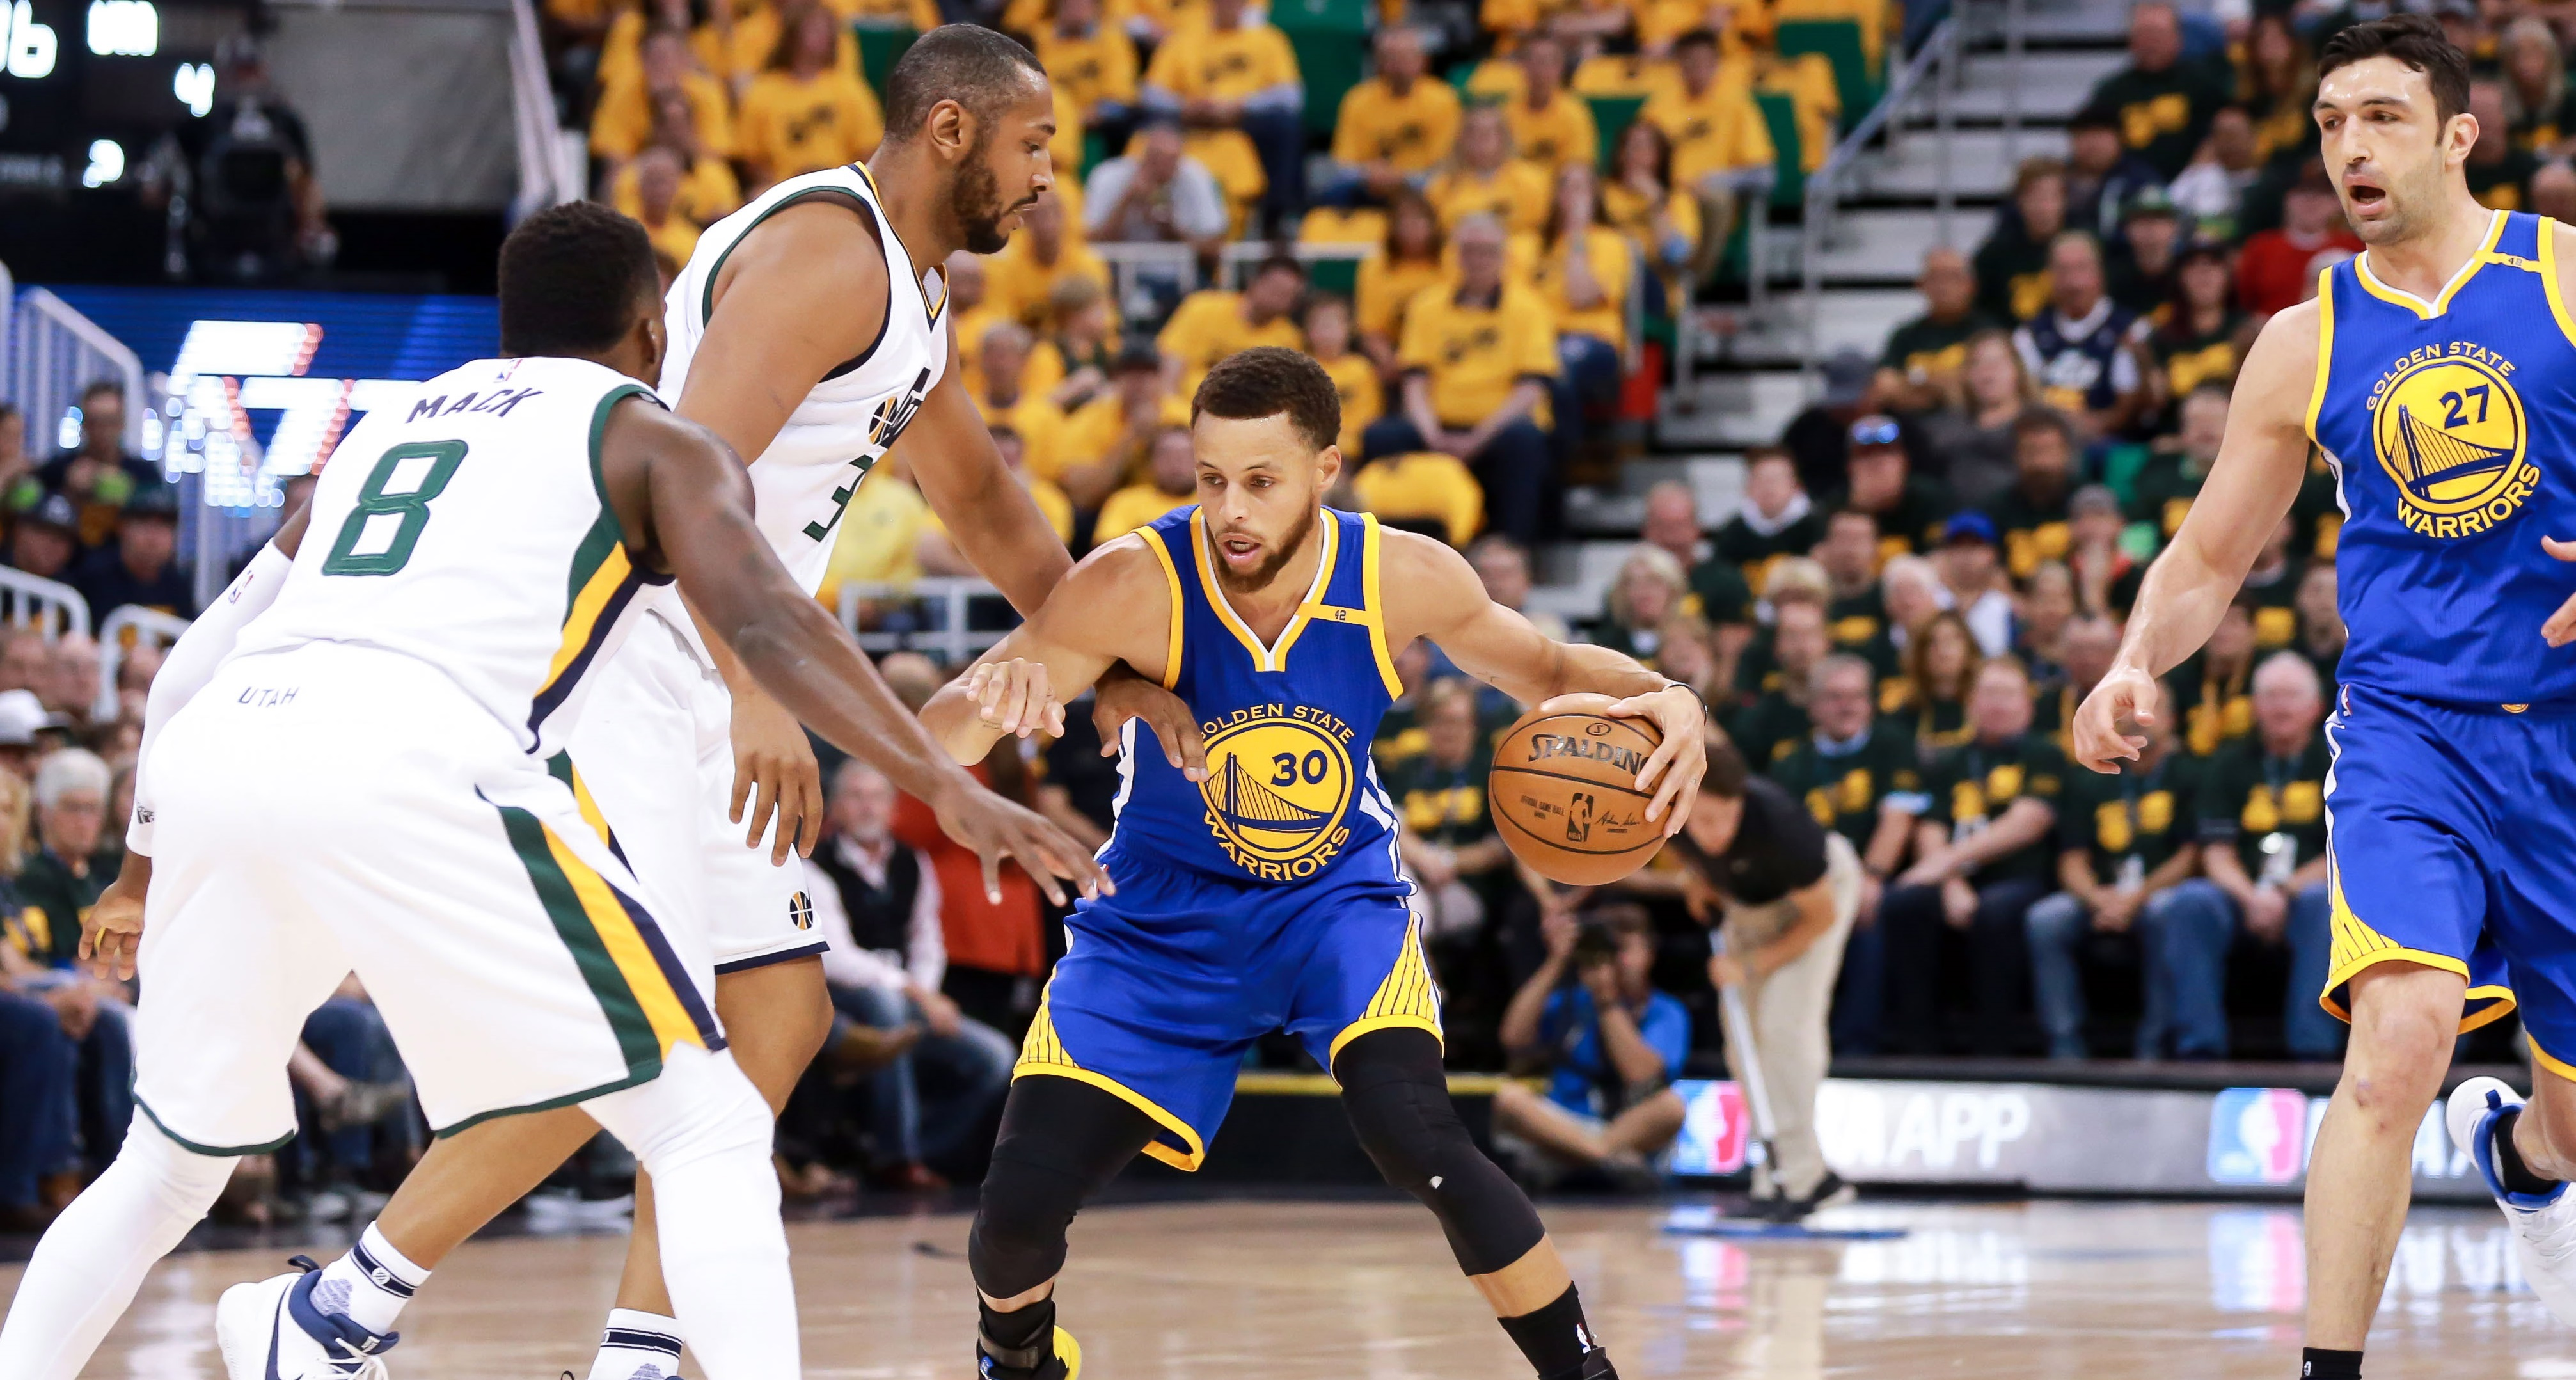 May 6, 2017; Salt Lake City, UT, USA;  Golden State Warriors guard Stephen Curry (30) keeps the ball away from Utah Jazz center Boris Diaw (33) during the first quarter in game three of the second round of the 2017 NBA Playoffs at Vivint Smart Home Arena. Mandatory Credit: Chris Nicoll-USA TODAY Sports